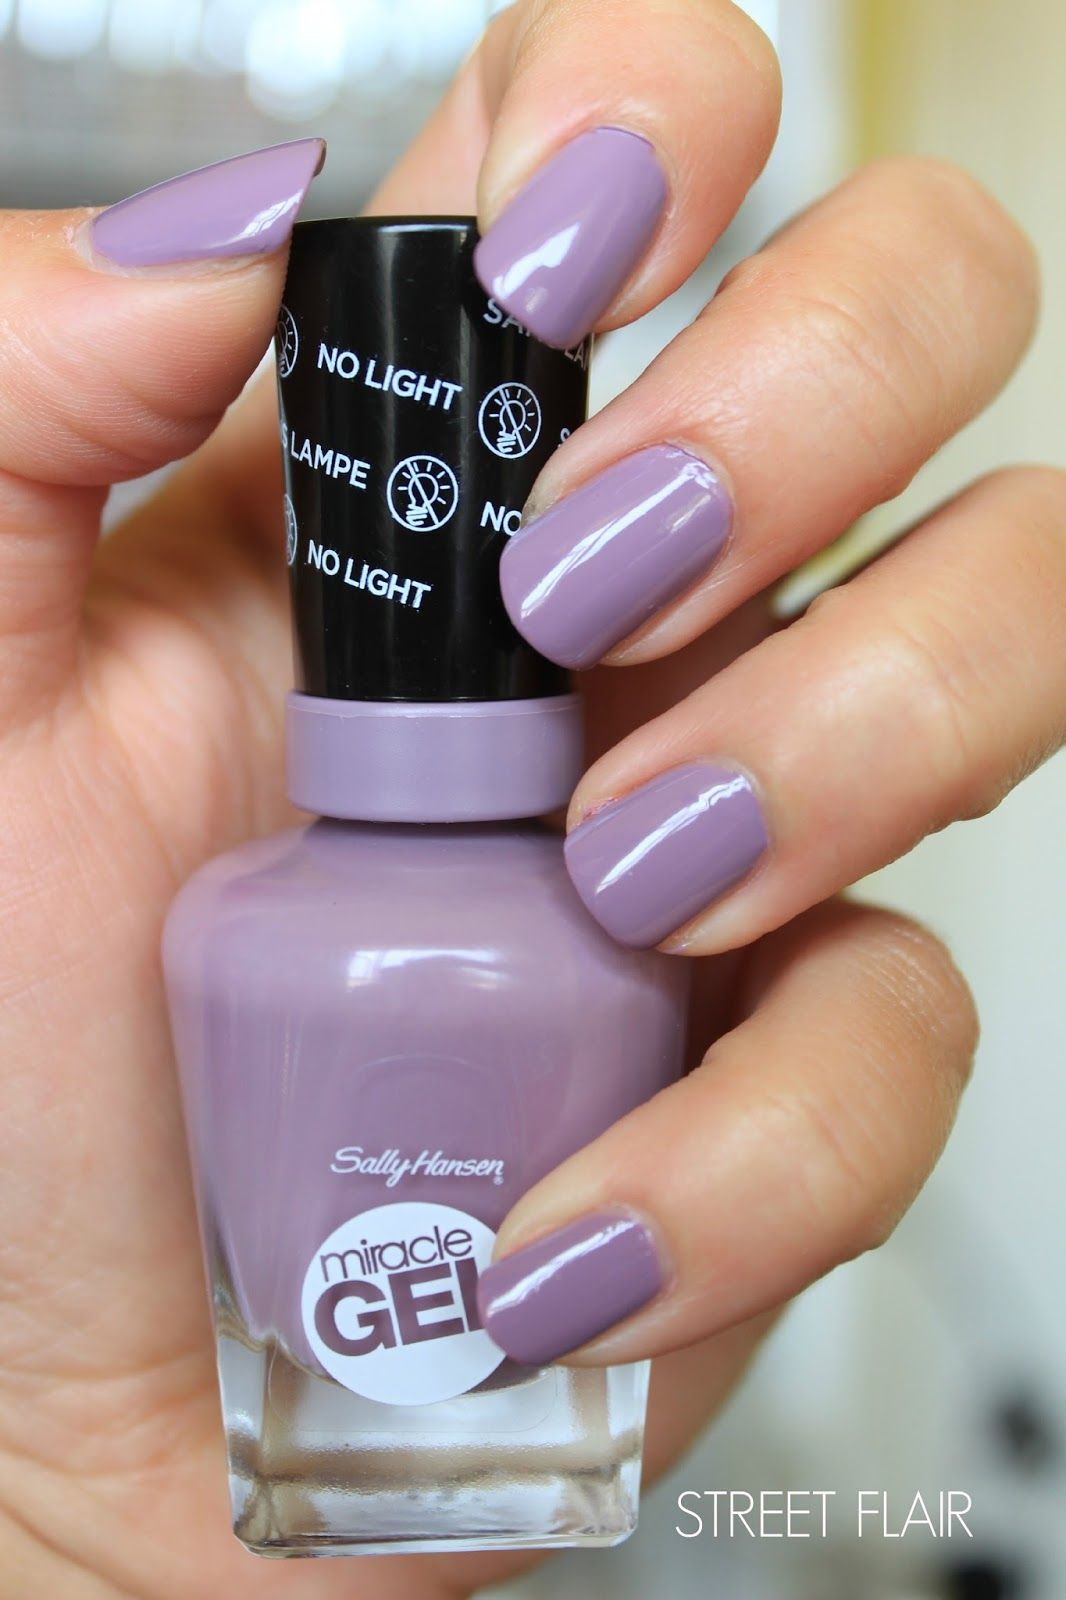 Sally Hansen Miracle Gel Street Flair Jpg 1066 1600 Sally Hansen Gel Nail Colors Sally Hansen Gel Nails Gel Manicure Colors